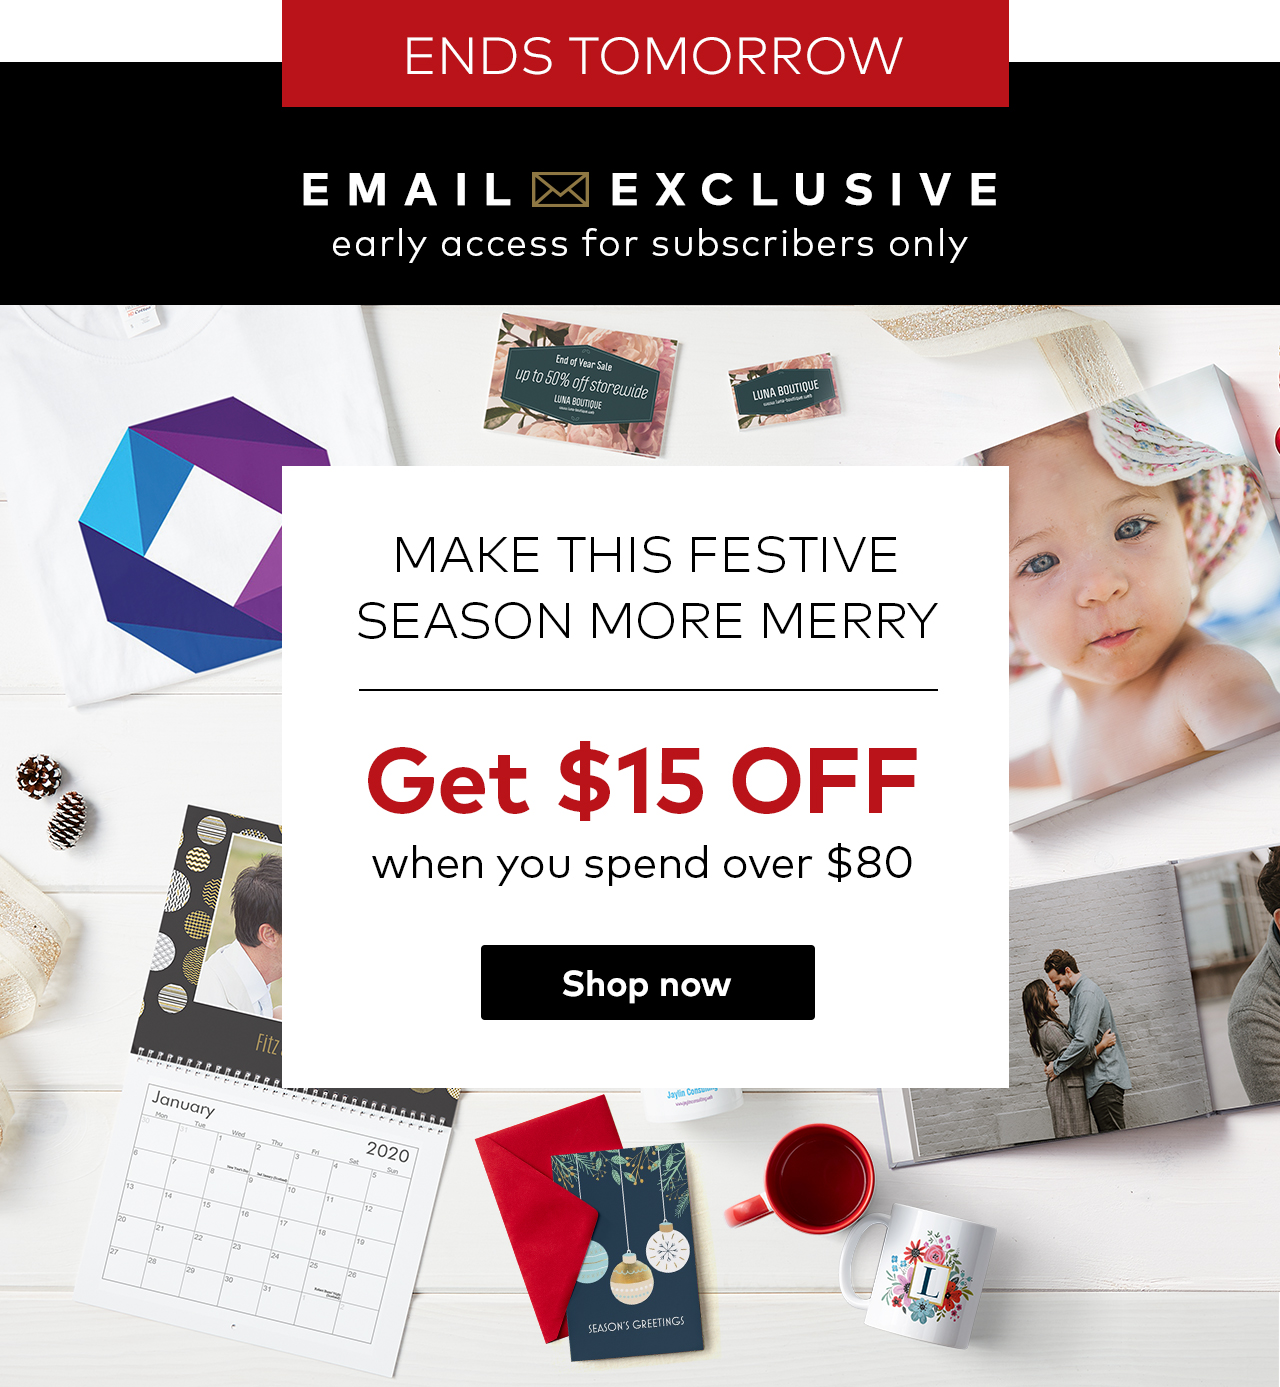 Email Exclusive - Make this festive season more merry. Get $15 off when you spend over $80. Shop now.